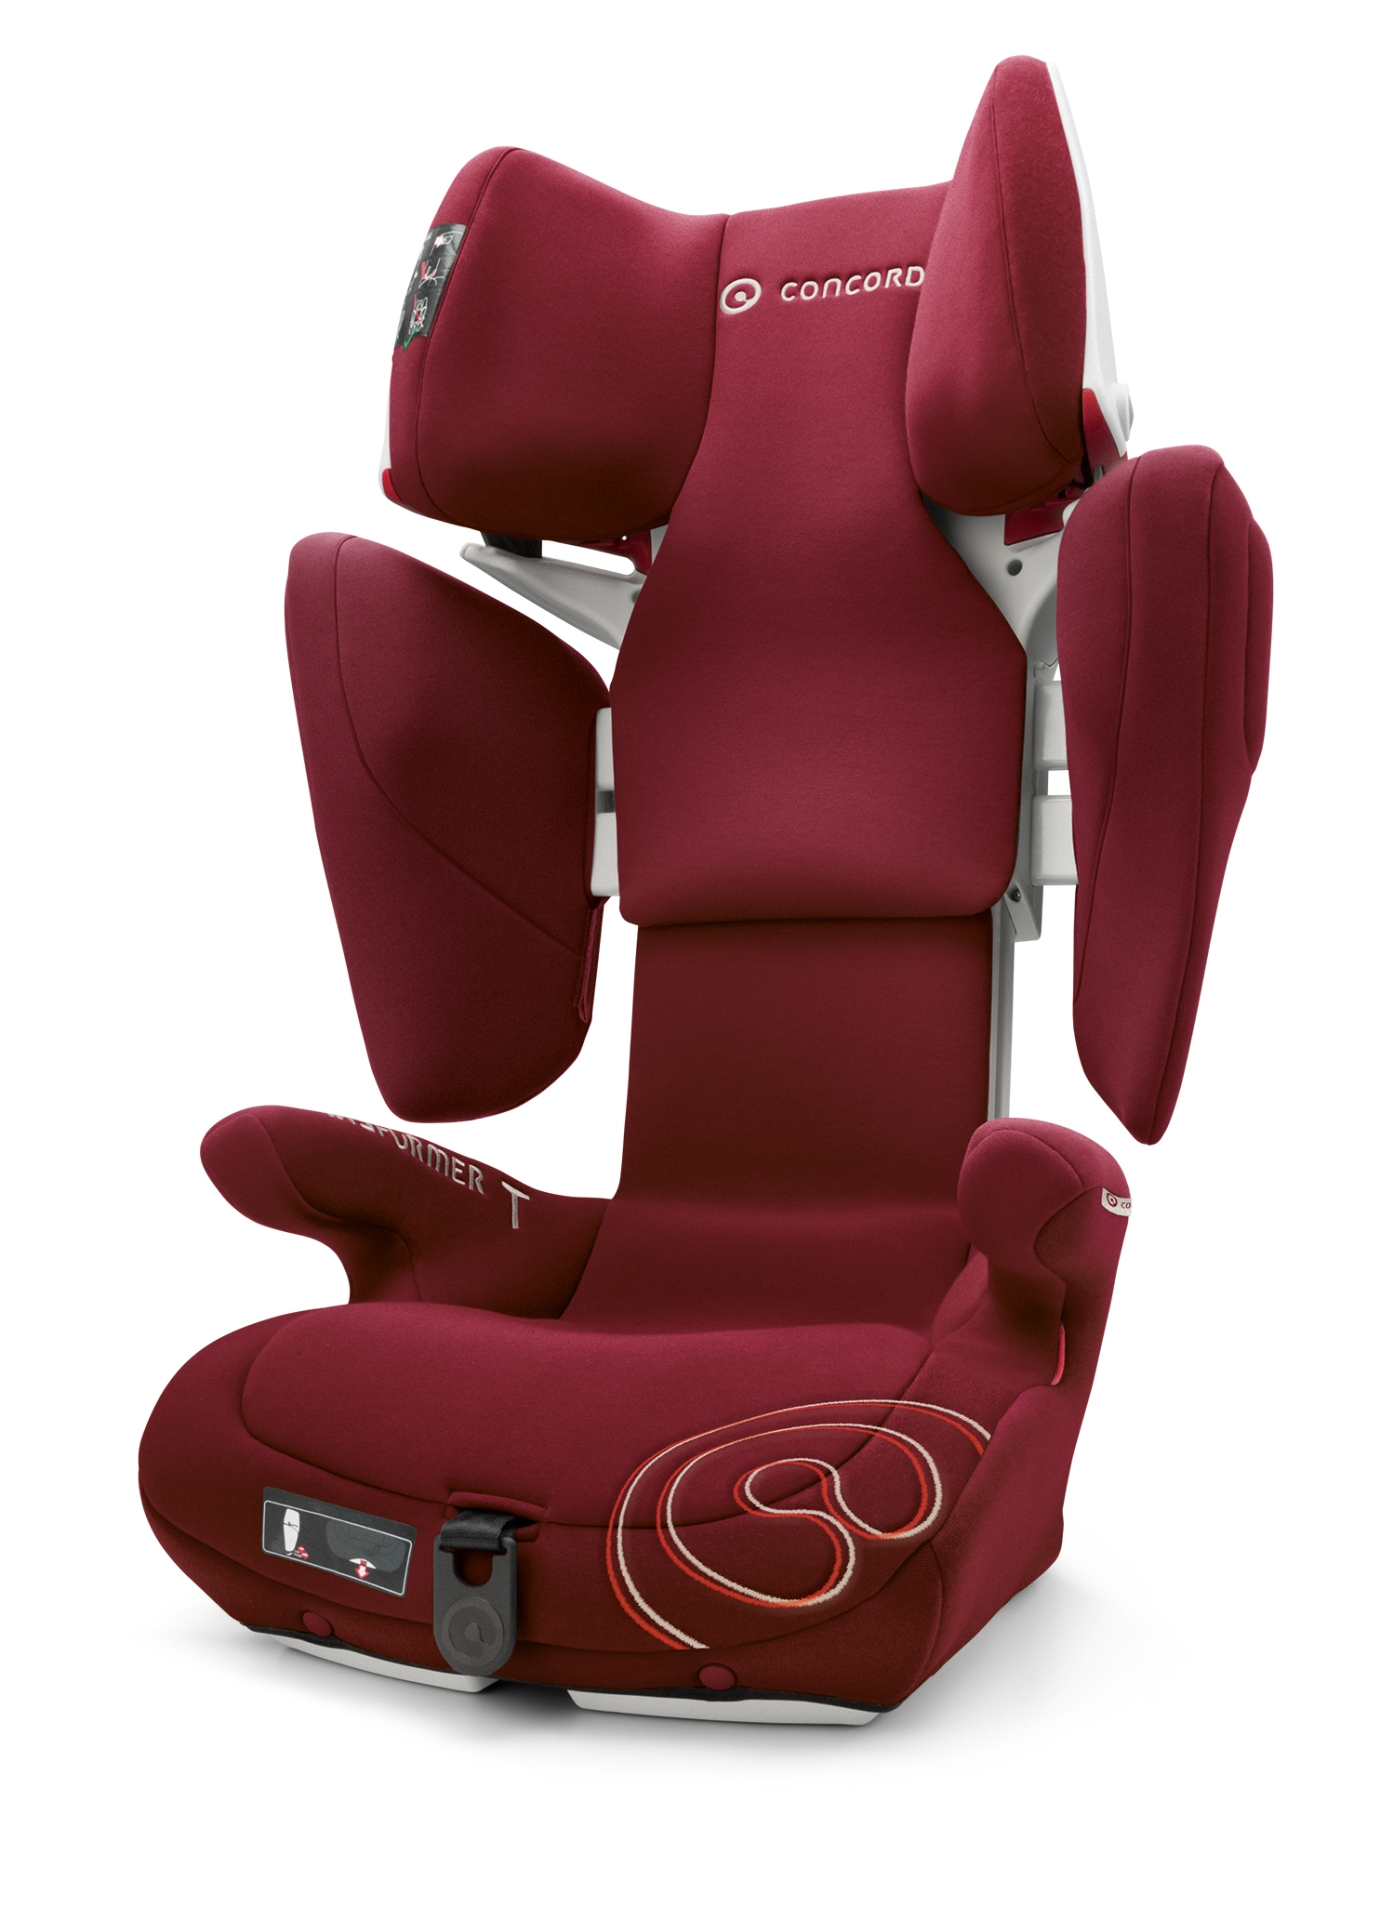 concord child car seat transformer t 2017 bordeaux red. Black Bedroom Furniture Sets. Home Design Ideas